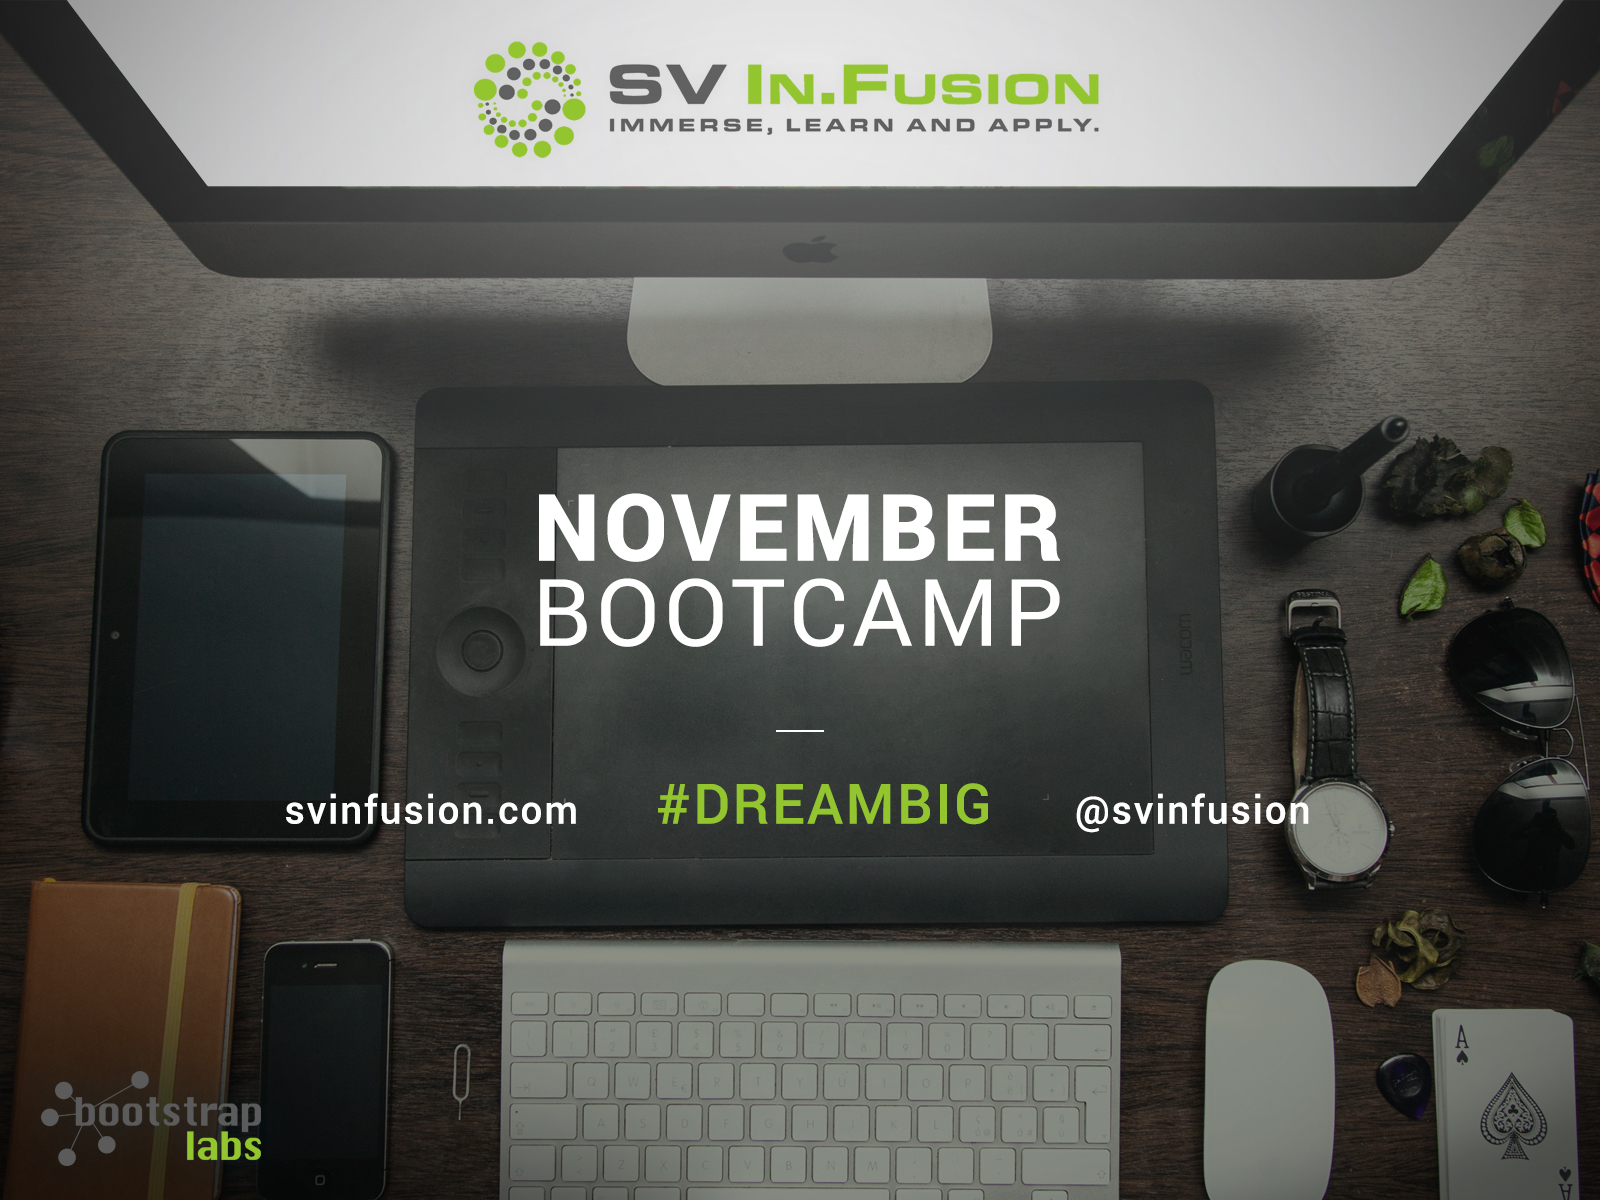 SV In.Fusion Bootcamp